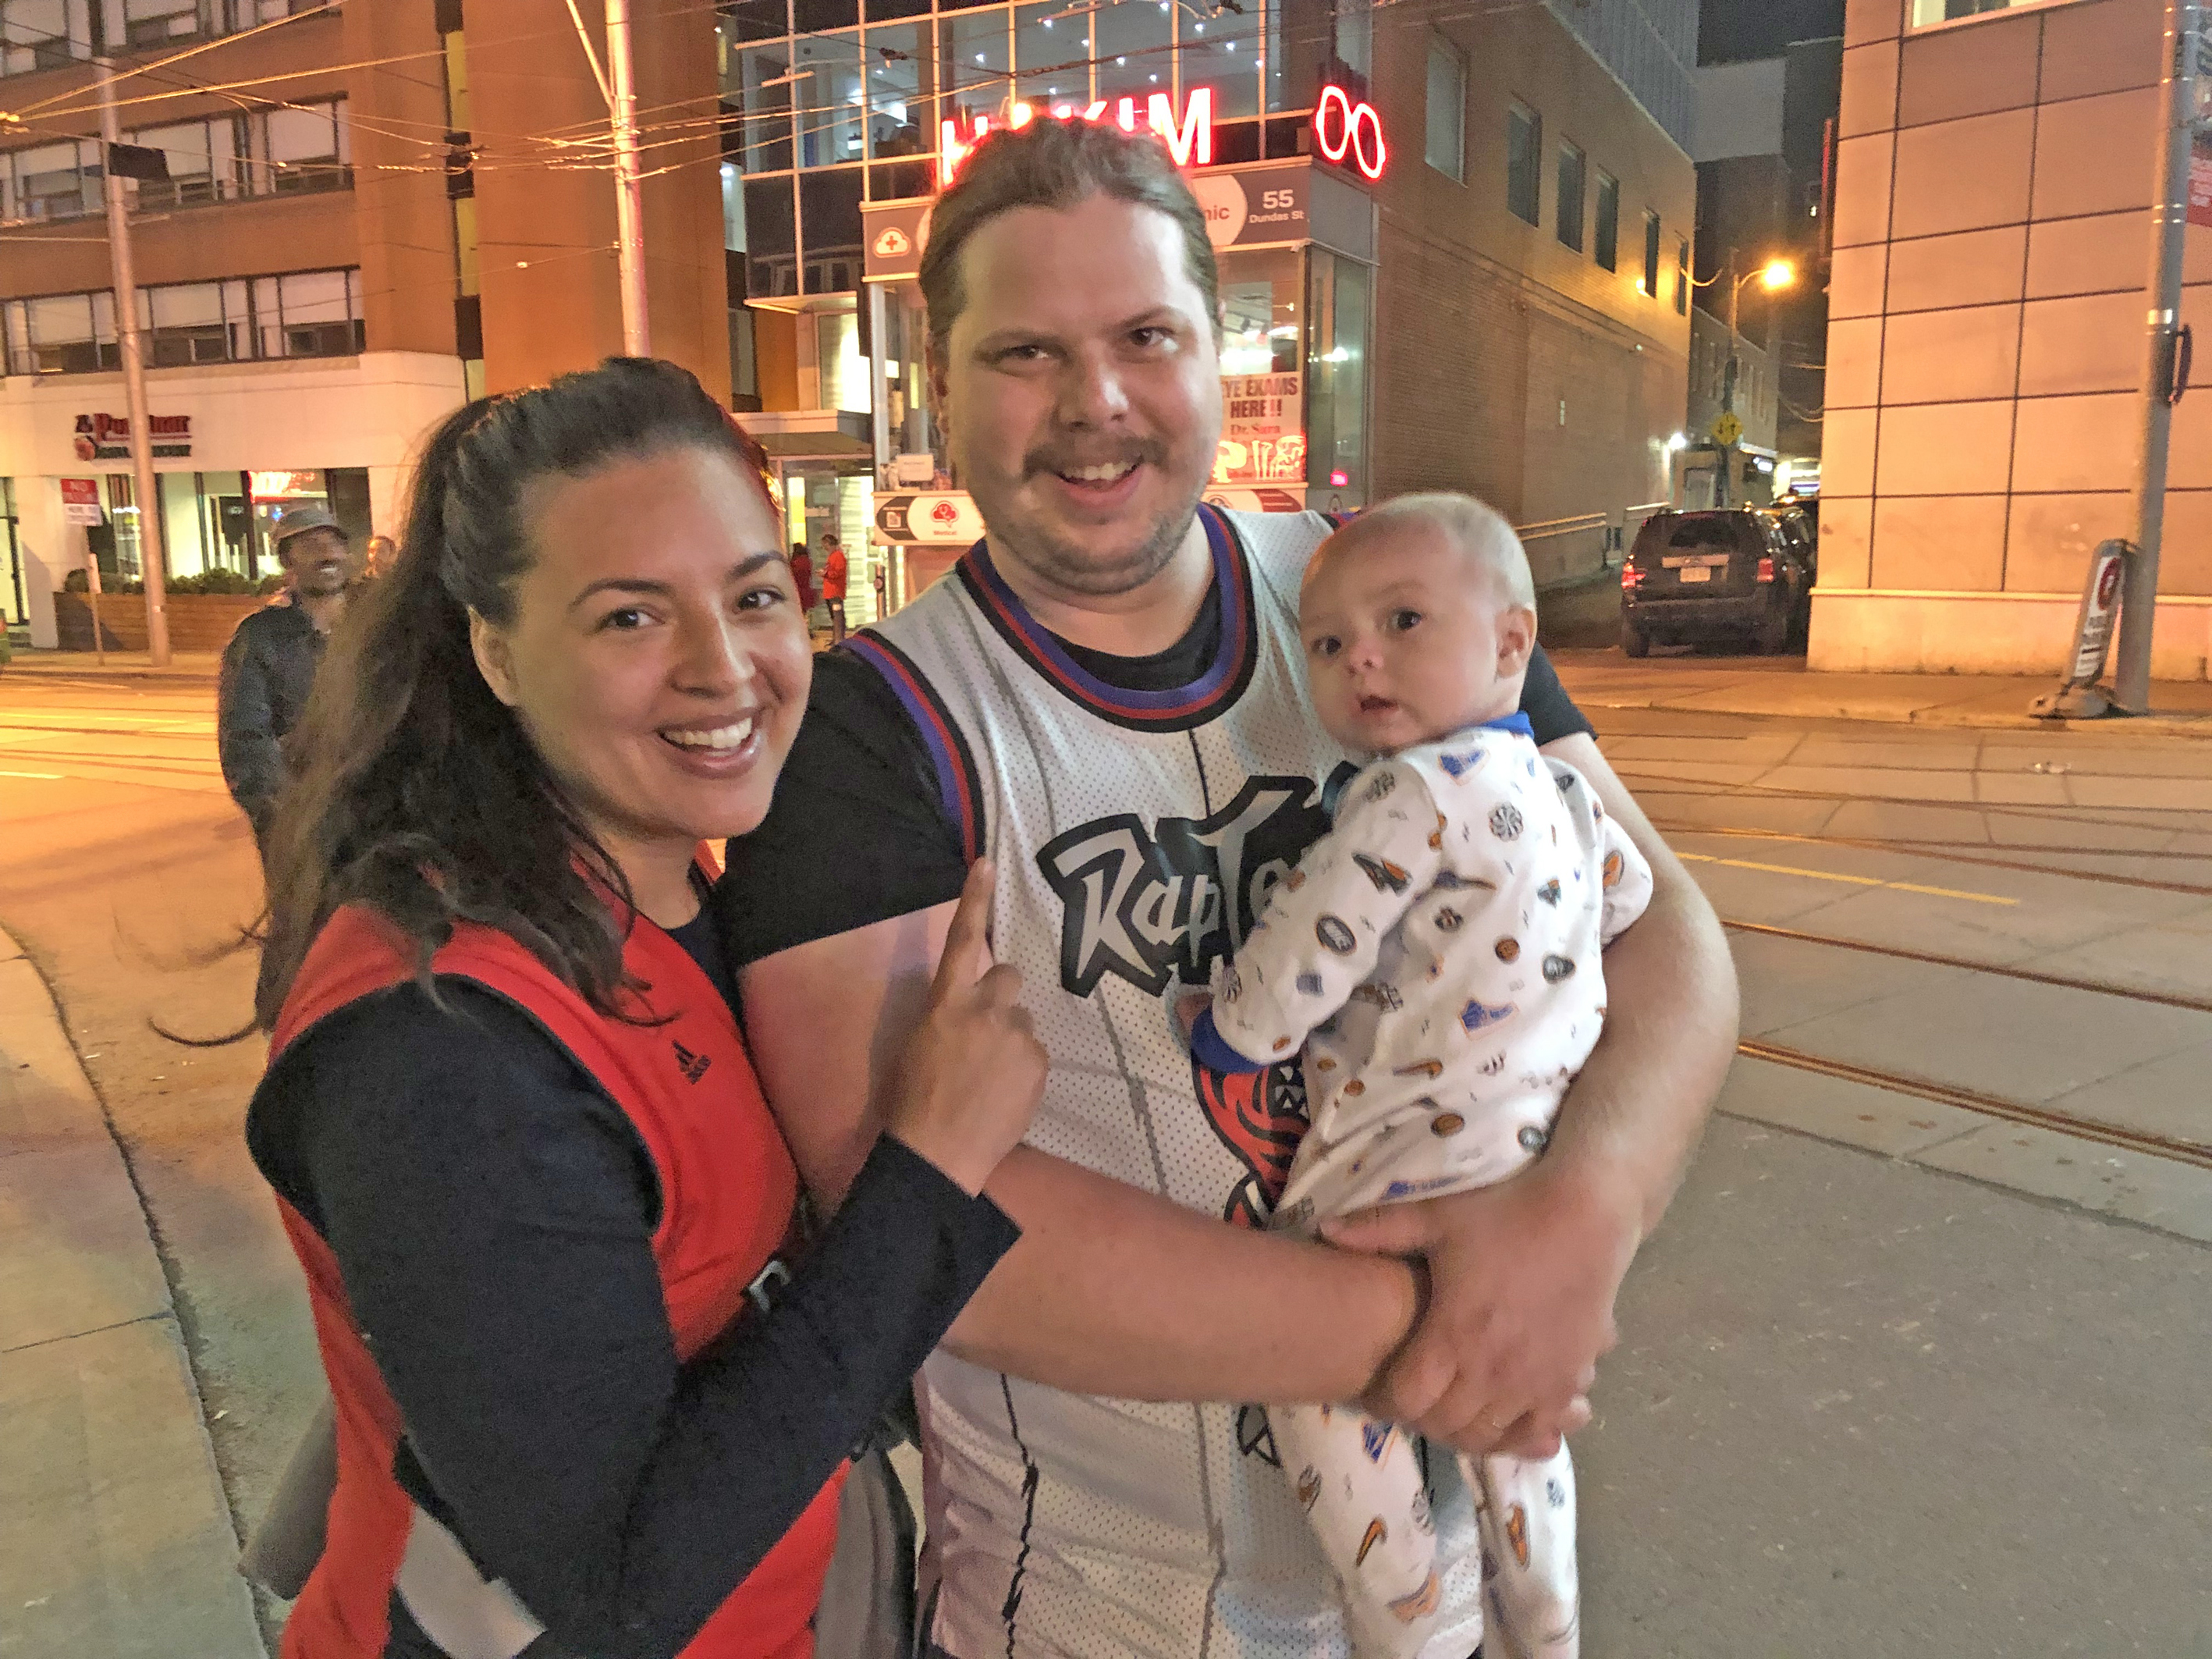 It might have been 1am, but this young couple were making sure their infant son could grow up to say 'I was there' when Toronto came out to celebrate